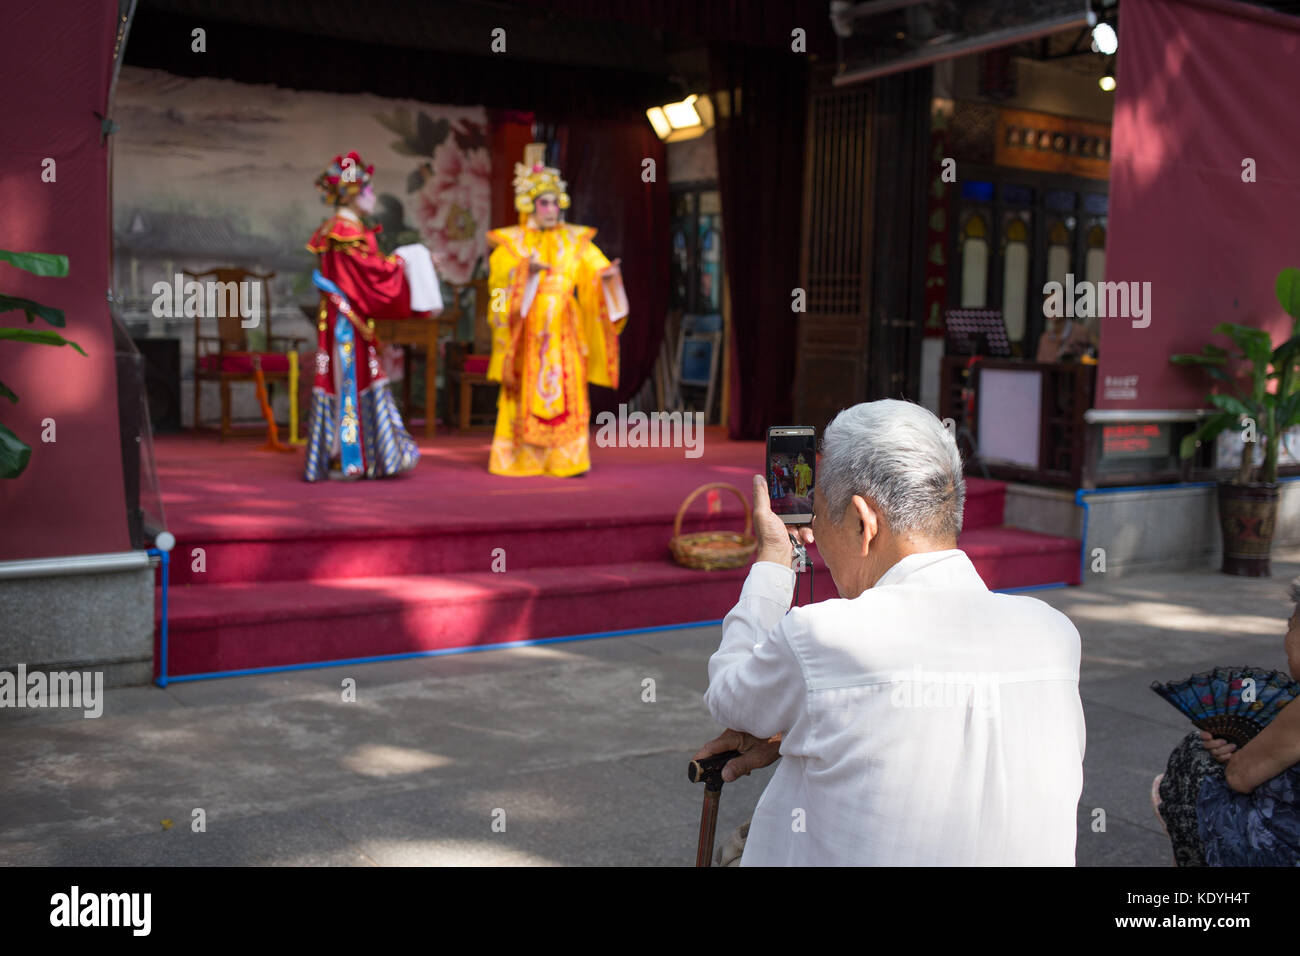 guangzhou,china - Aug,16,2017: Old man watching contonese opera show with moblie. Stock Photo